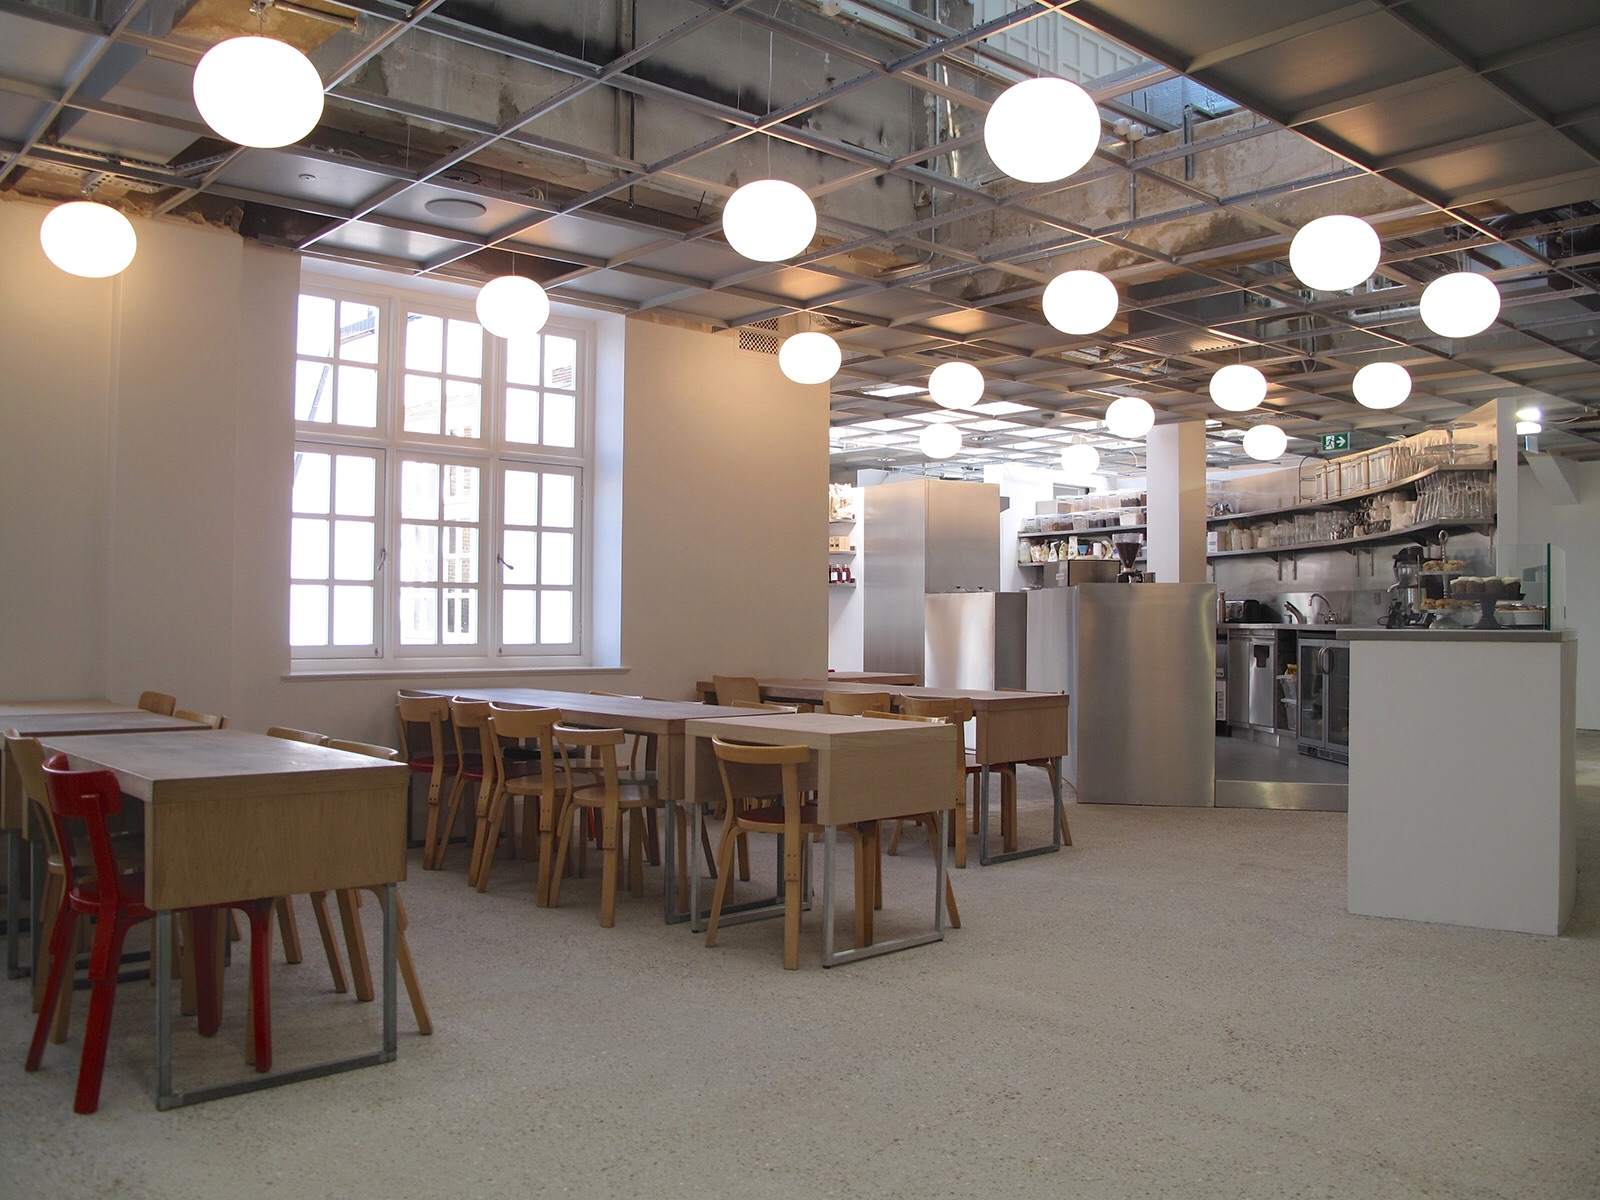 The new Rose Bakery space